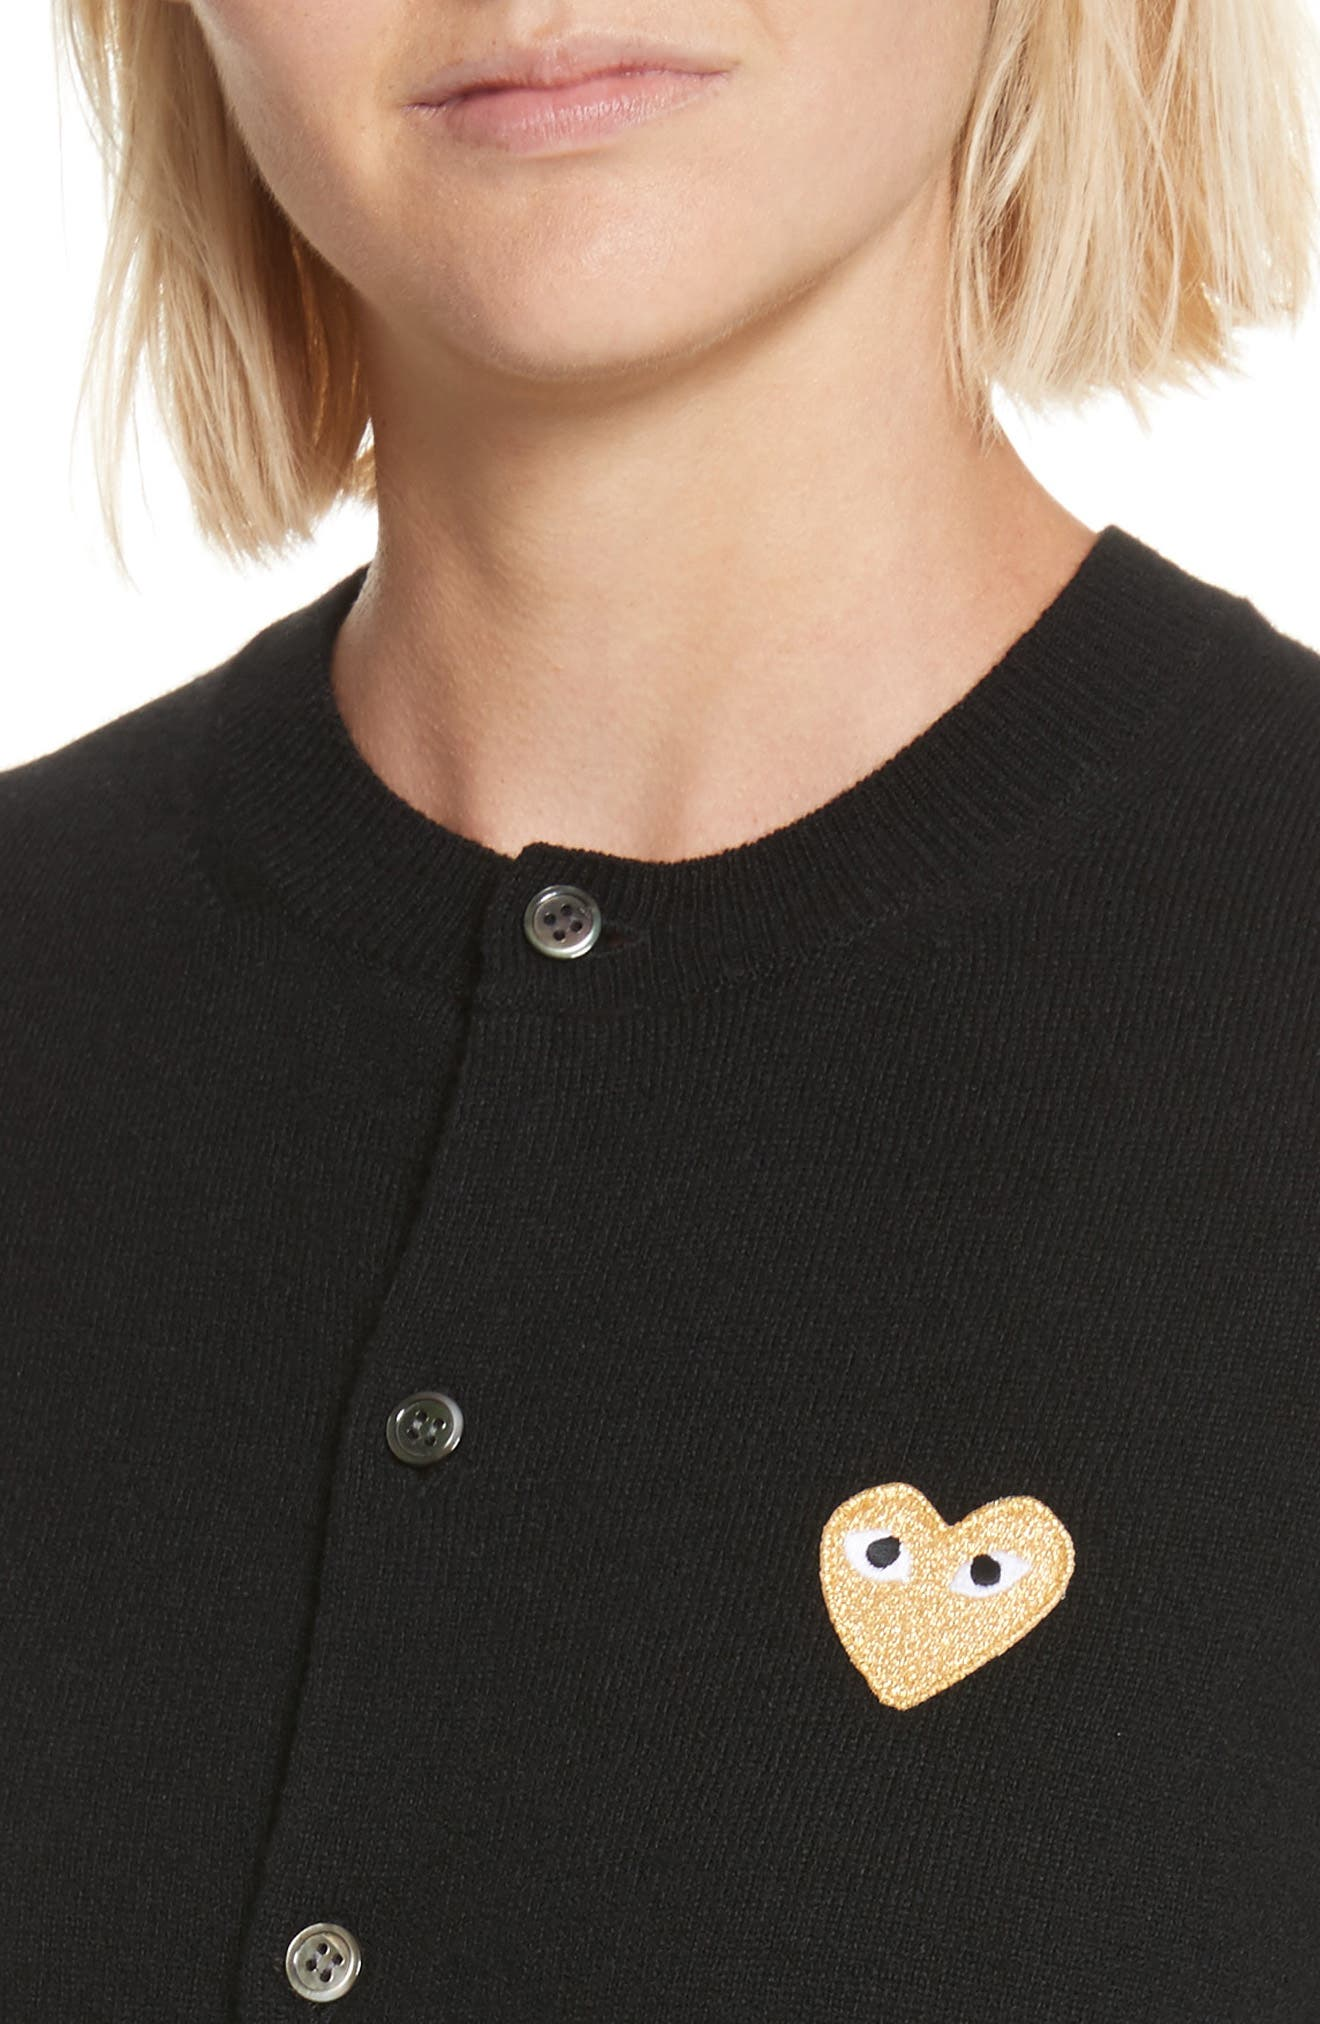 PLAY Gold Heart Patch Wool Cardigan,                             Alternate thumbnail 4, color,                             Black